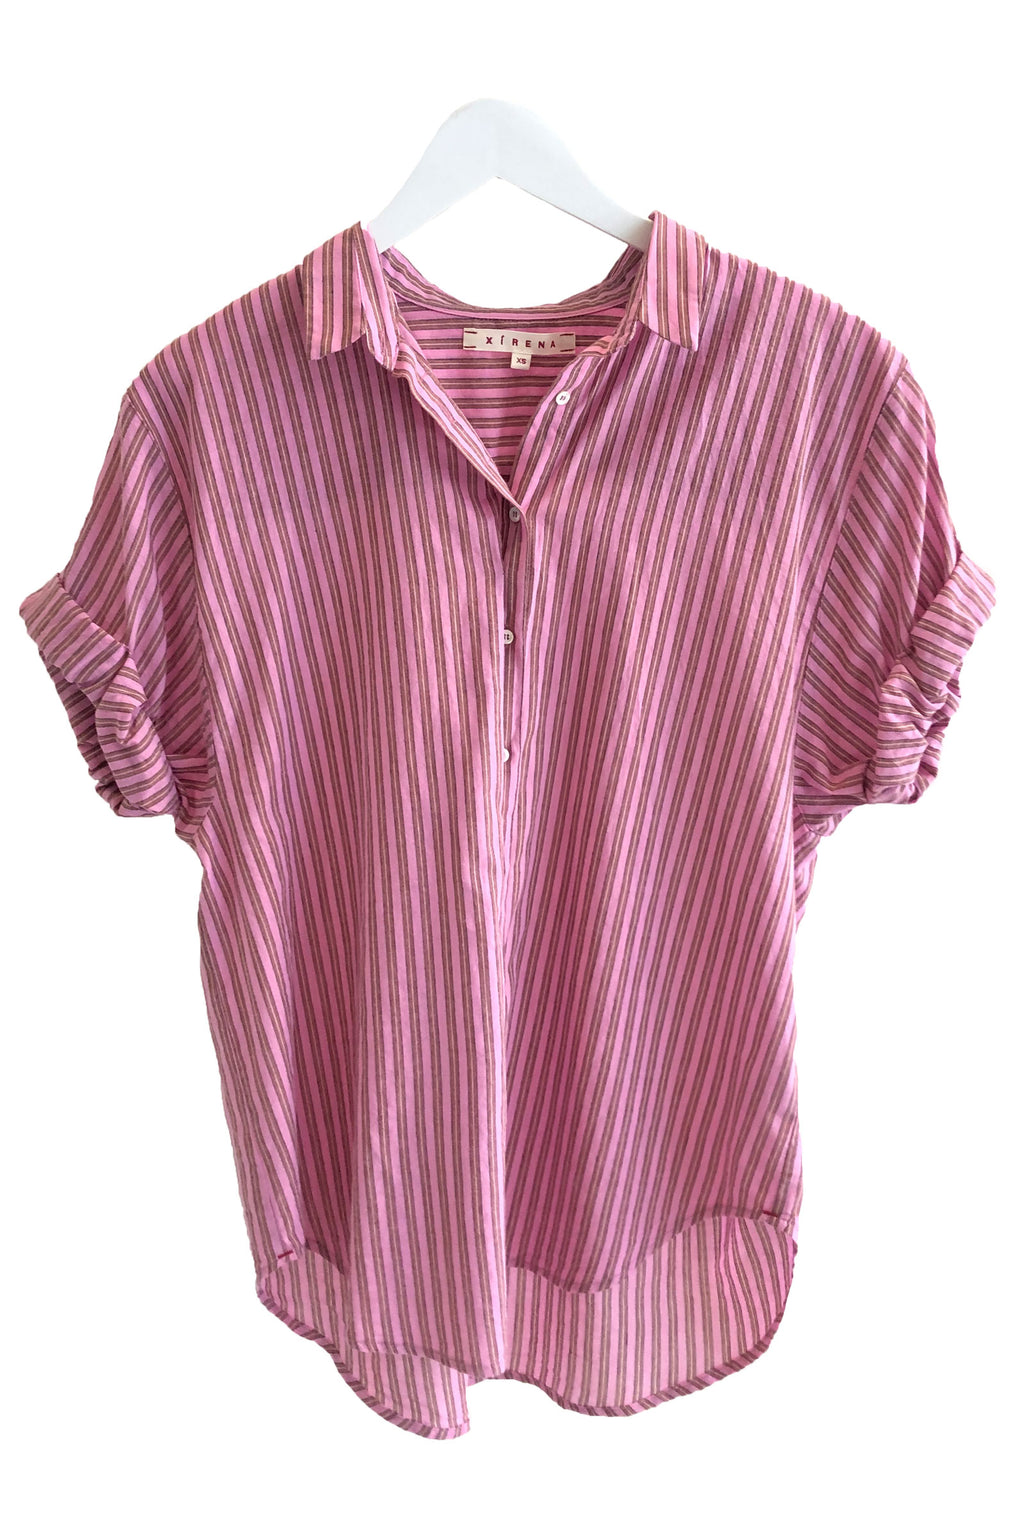 Xirena Poplin Channing Shirt in Bloom Stripe